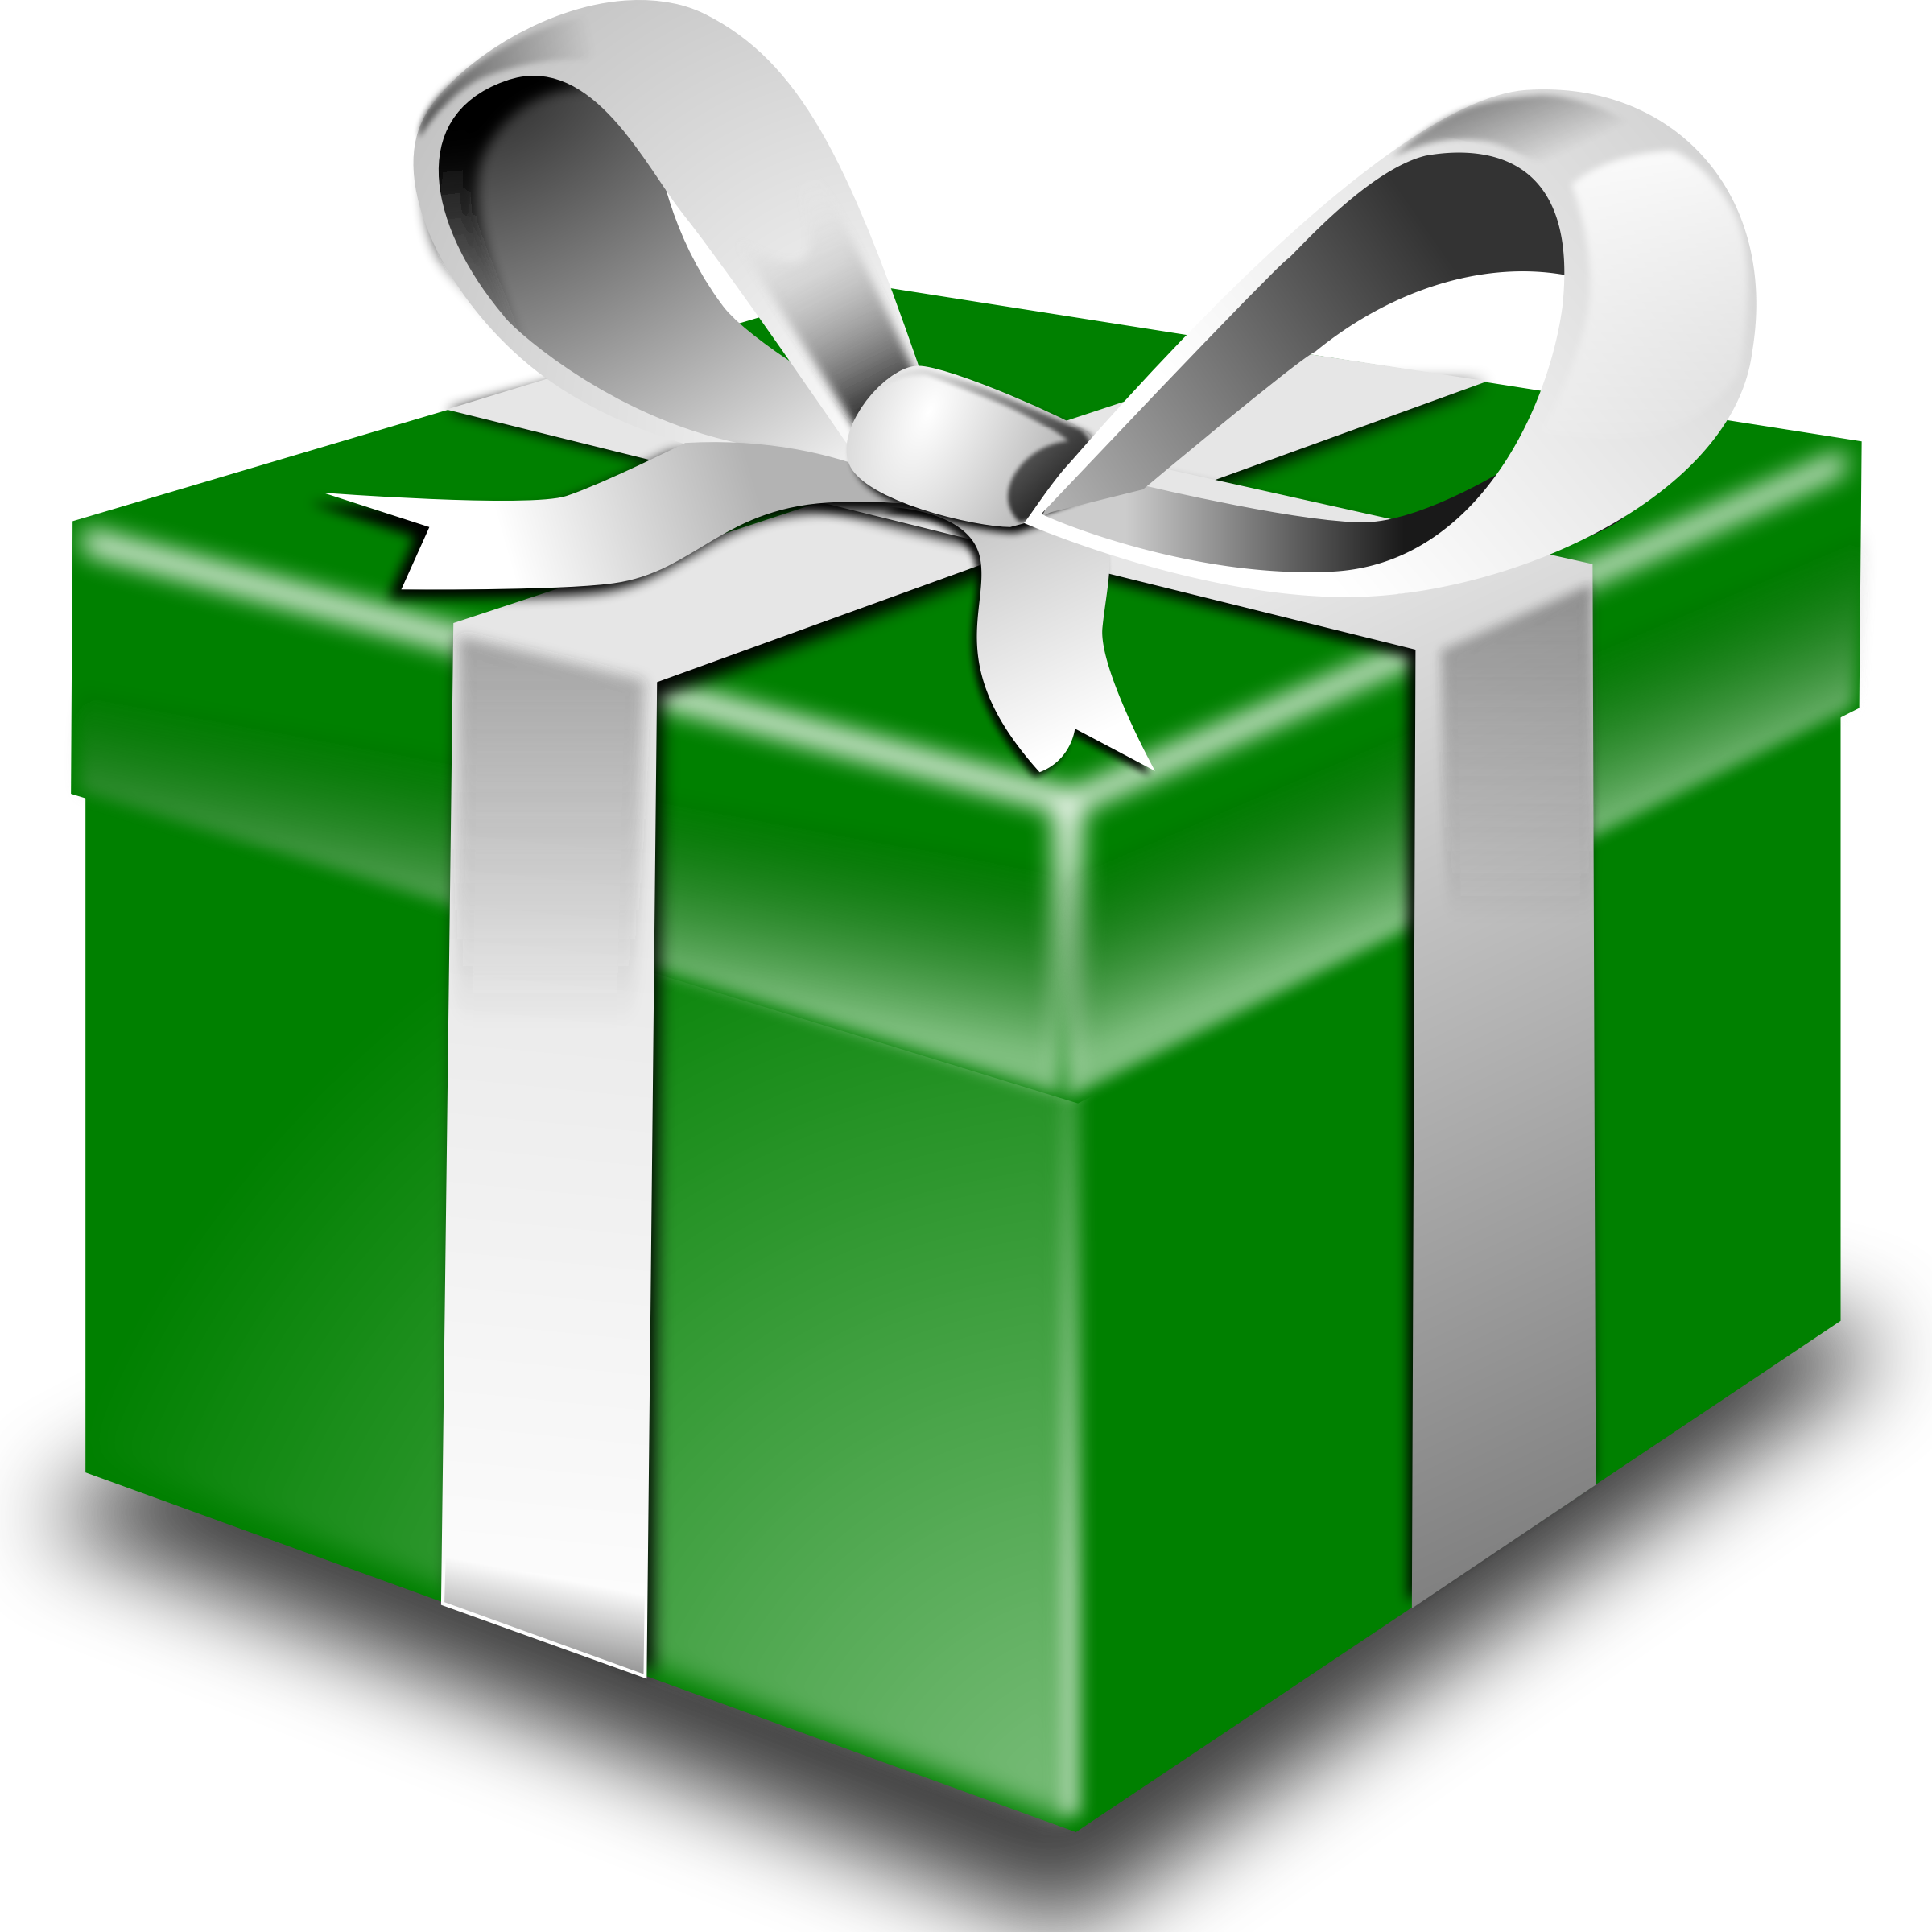 Last minute golf ideas. Gifts clipart gift item